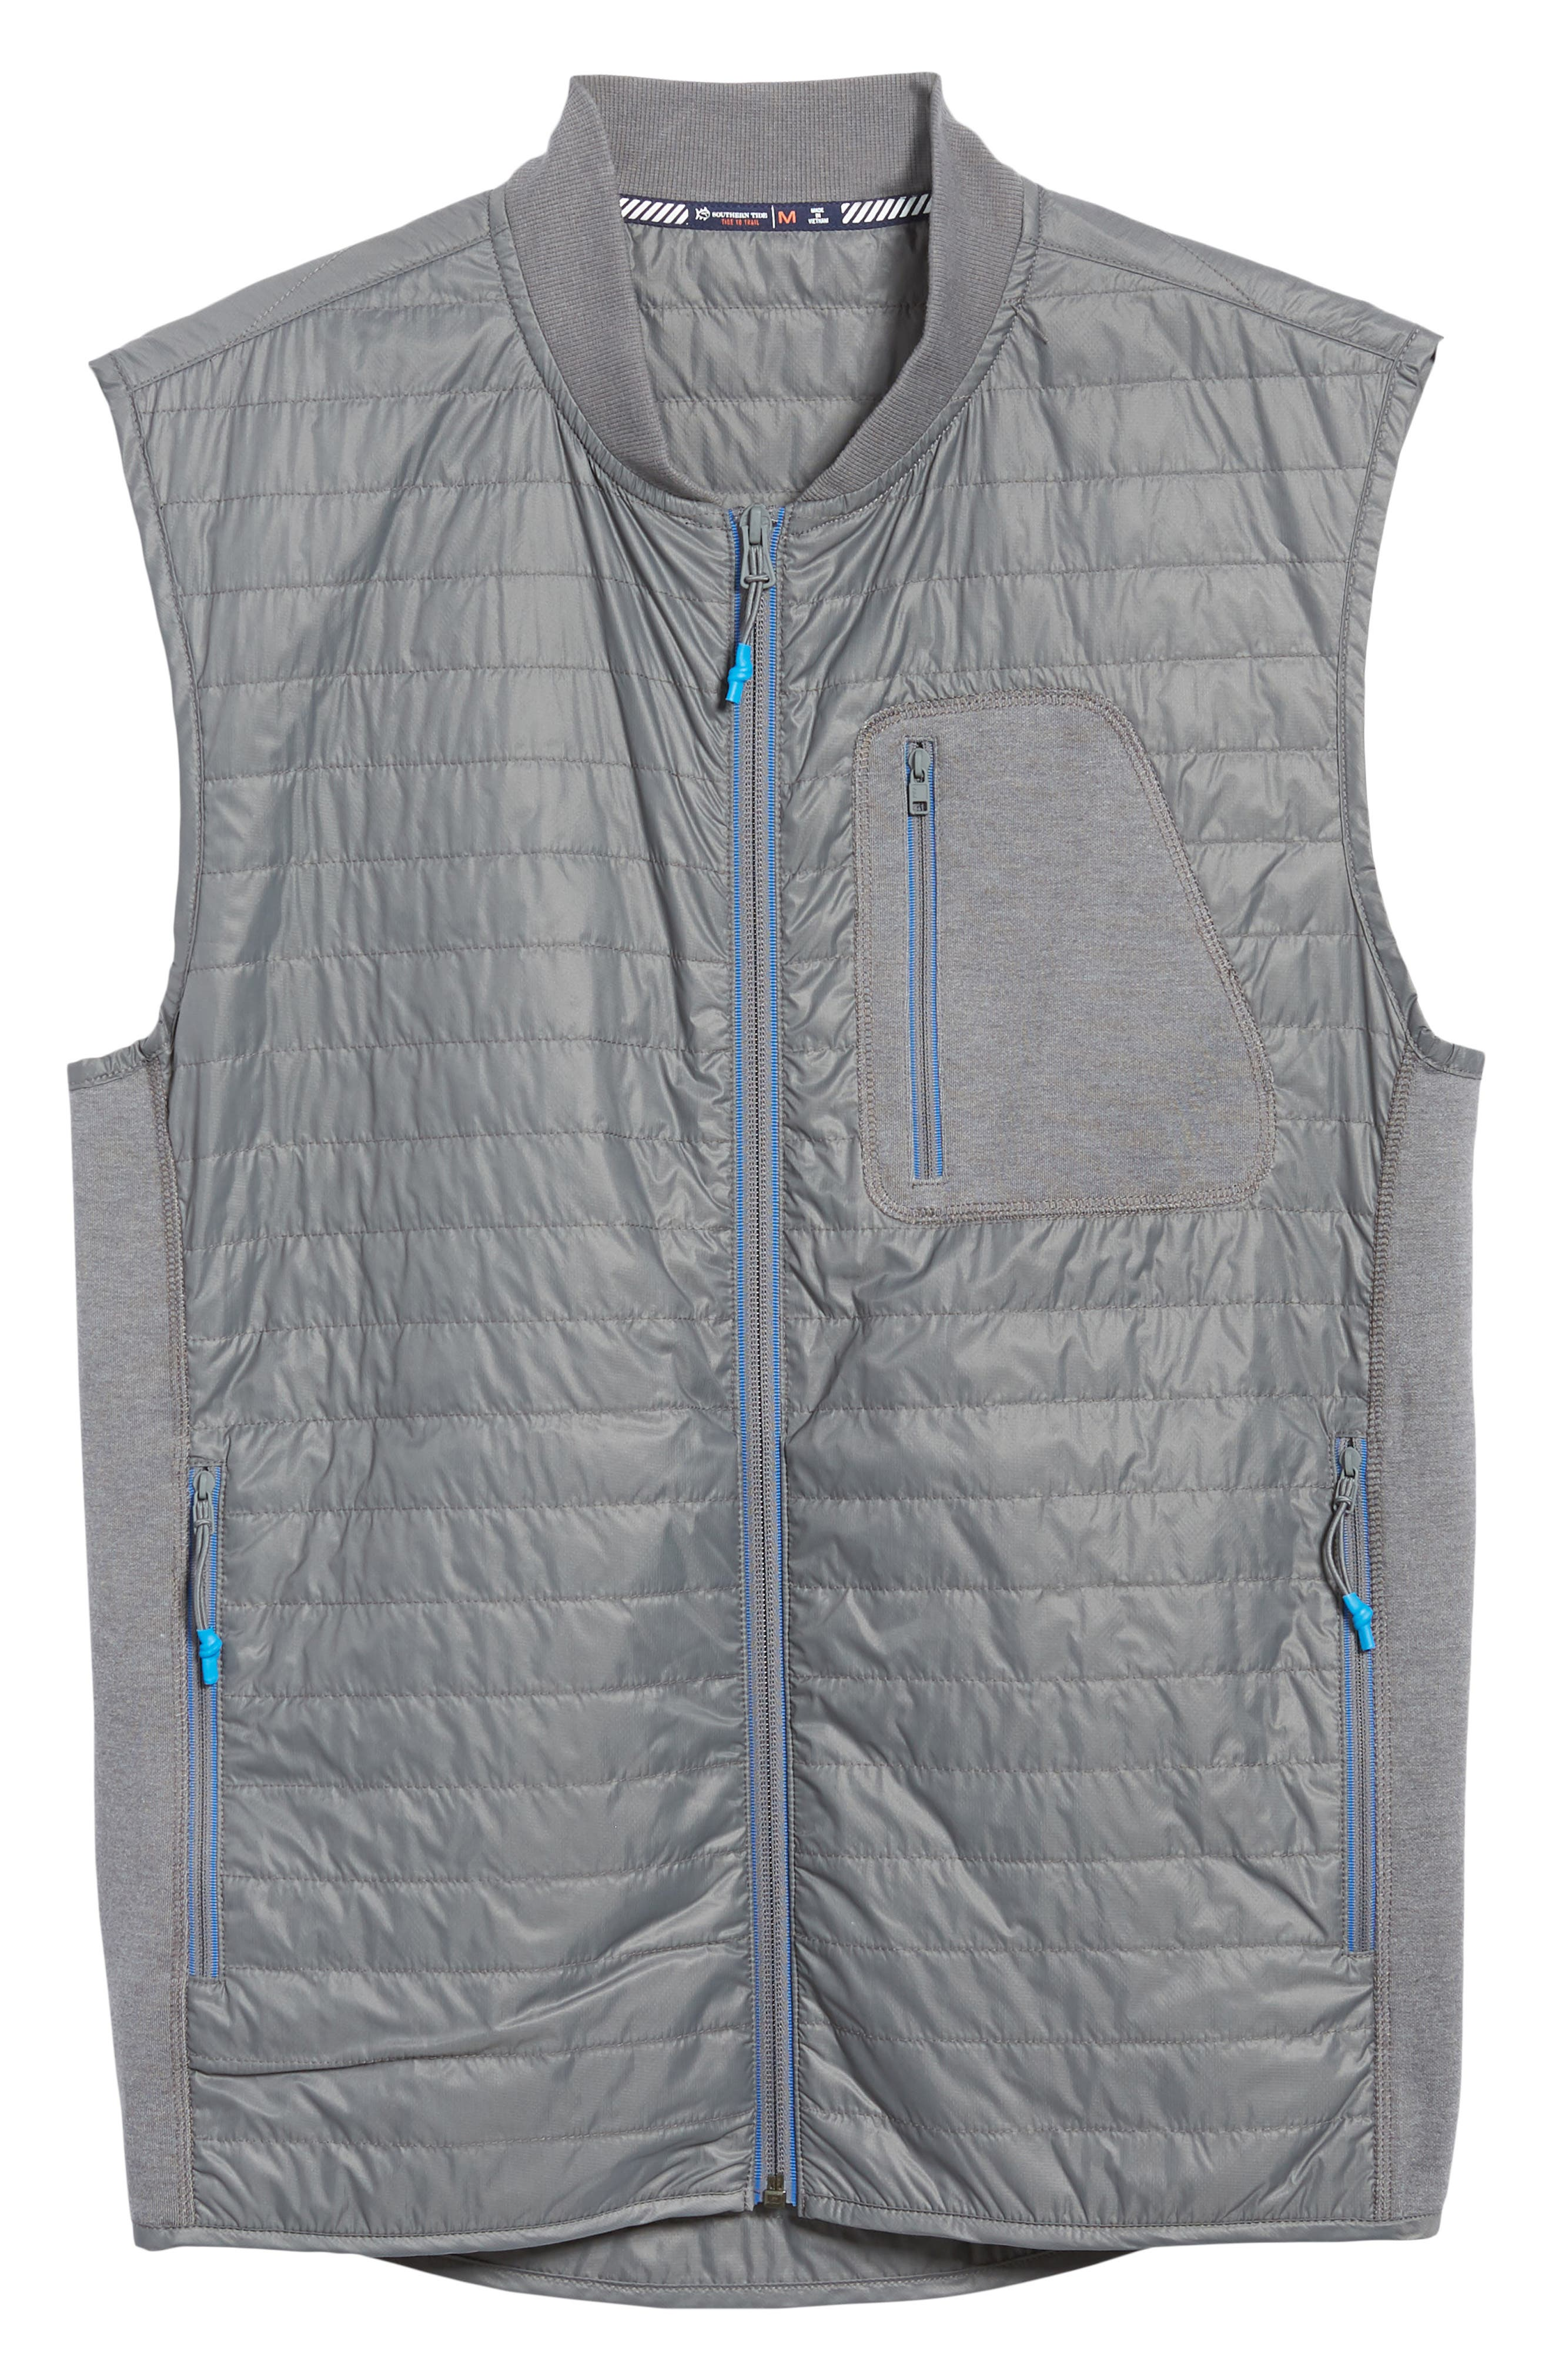 Forrest Creek Bomber Vest,                             Alternate thumbnail 6, color,                             SMOKED PEARL